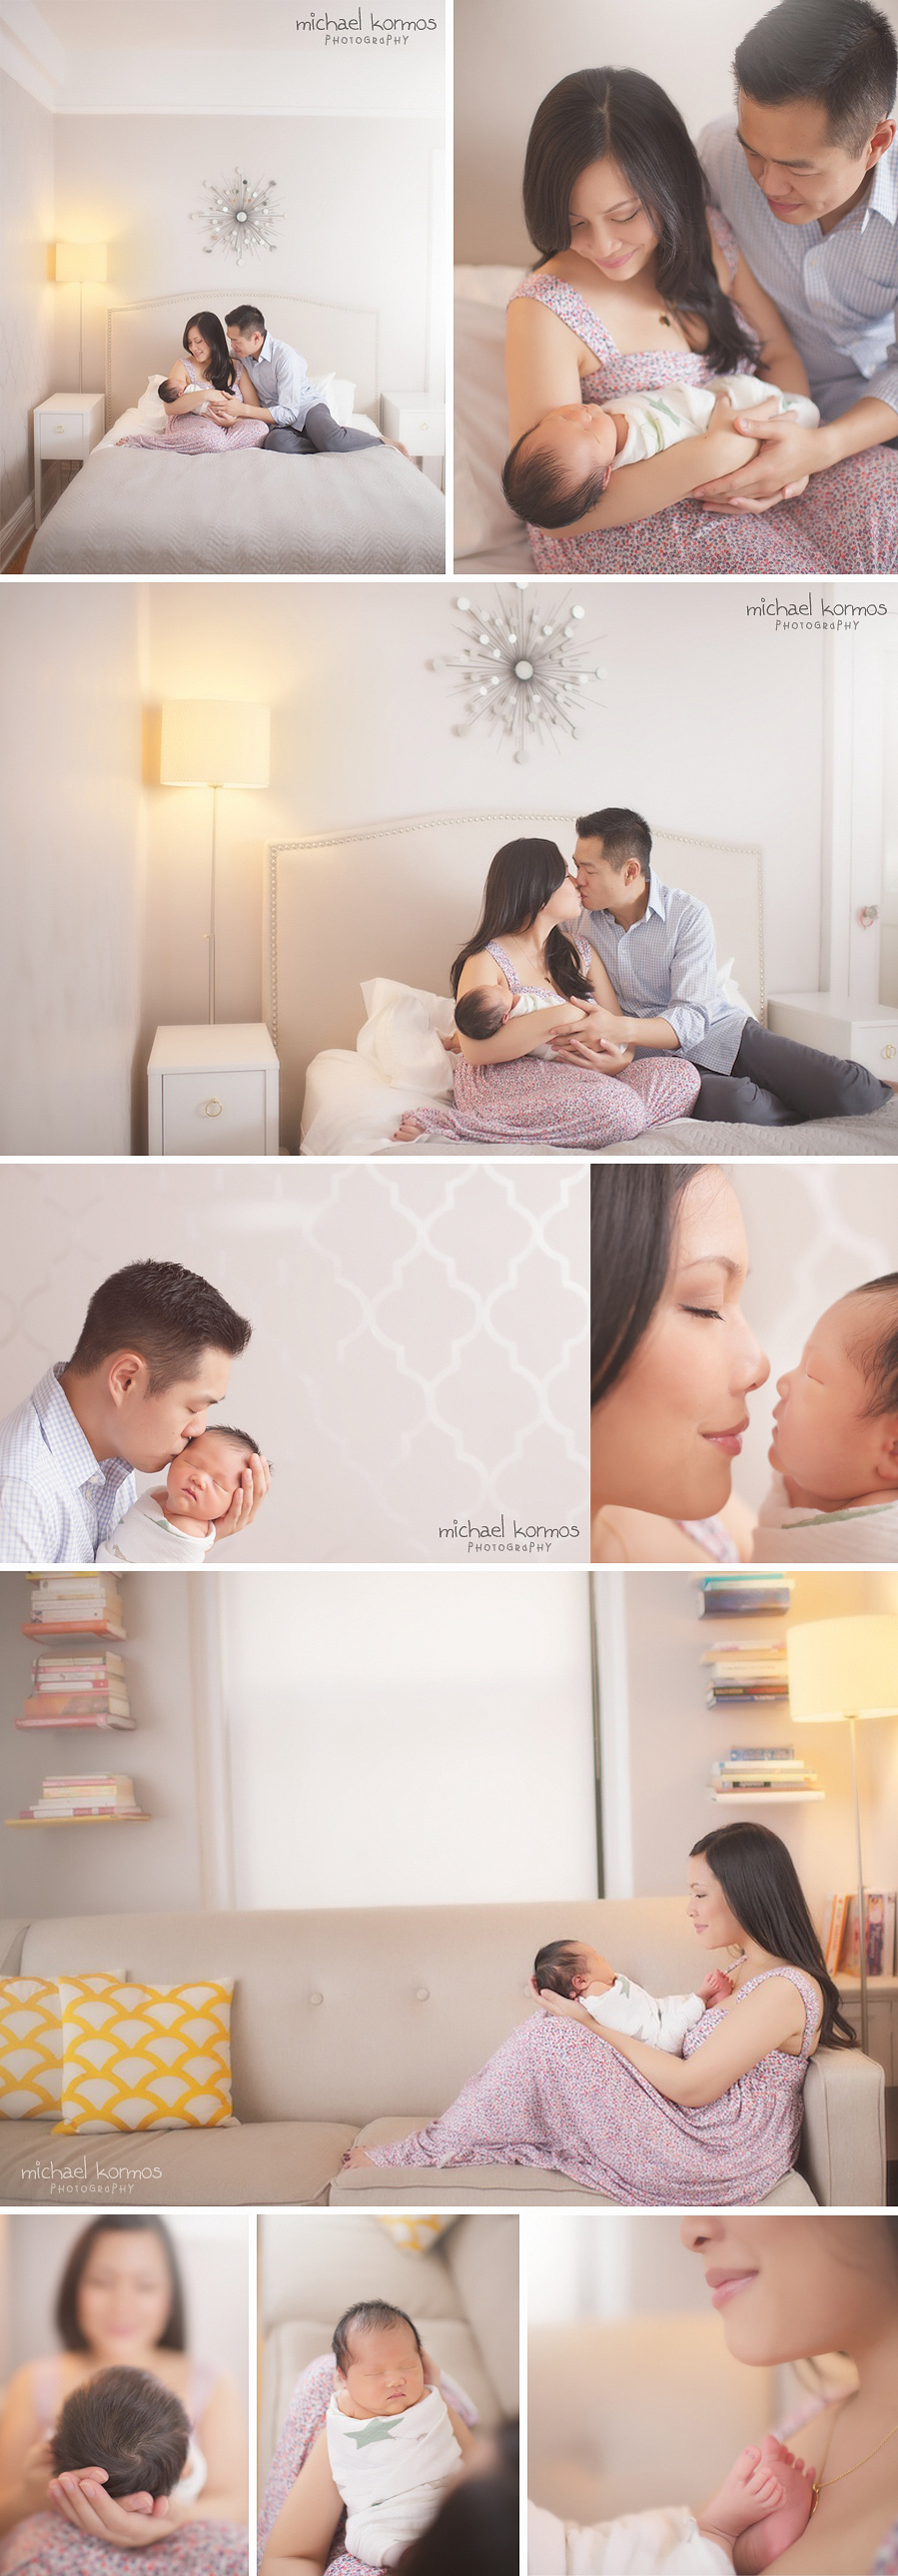 Family & newborn photography by Michael Kormos